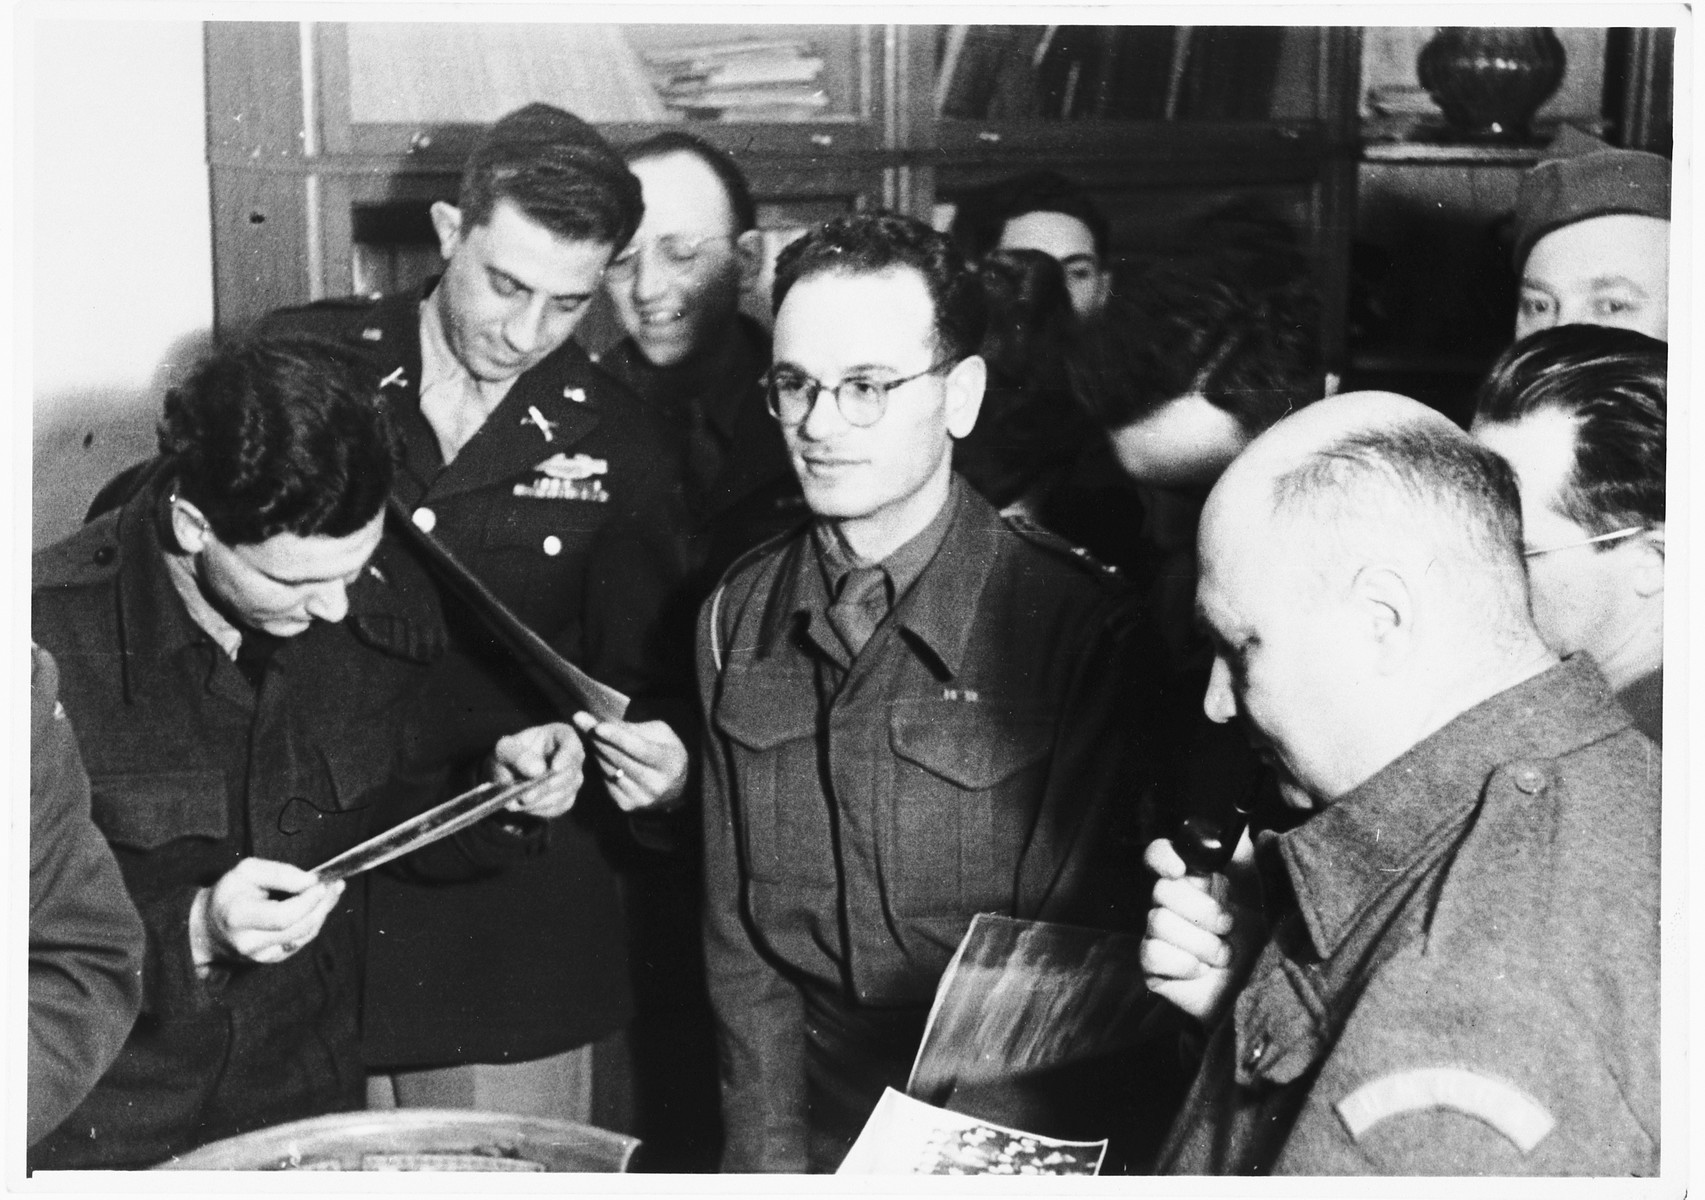 UNRRA camp director Harold Fishbein (lower right) and other personnel view photographs in an office in the Schlachtensee displaced persons camp.